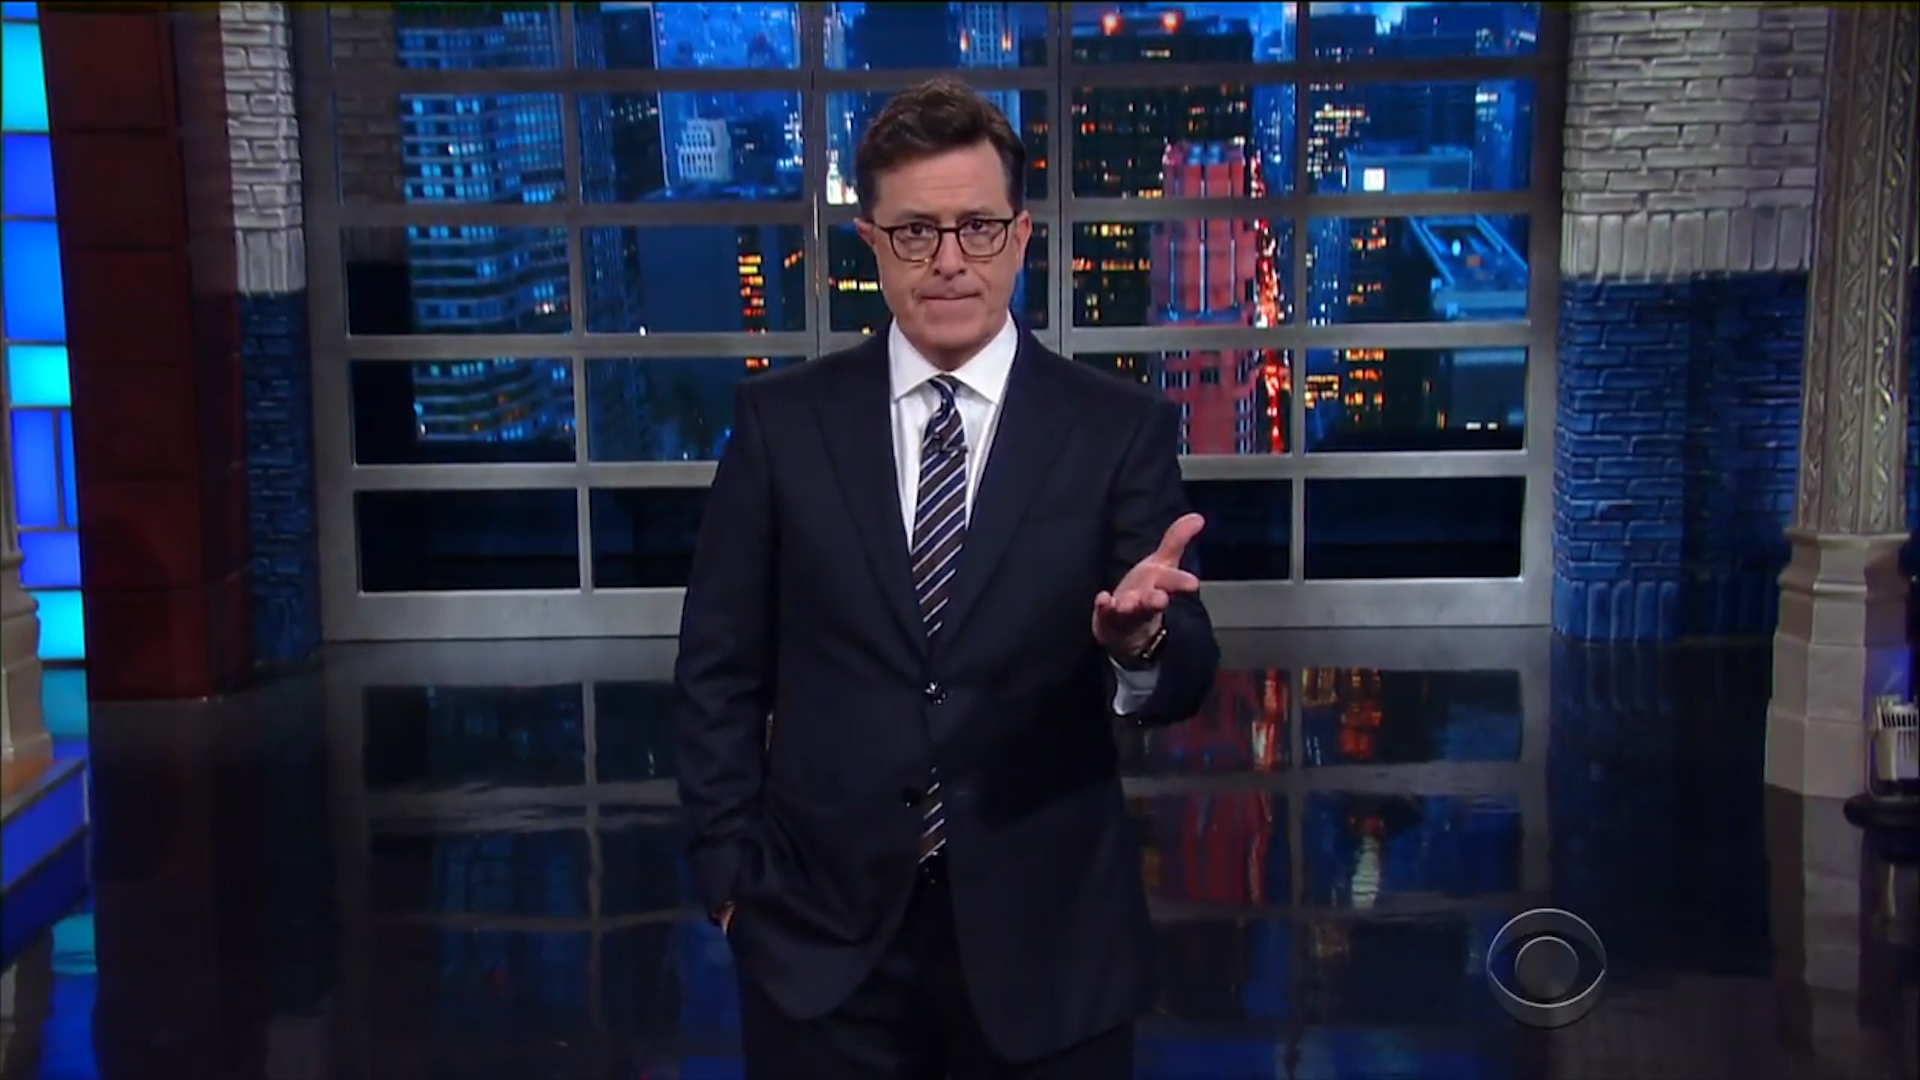 Colbert and Meyers Give Trump's First 100 Days a Resounding